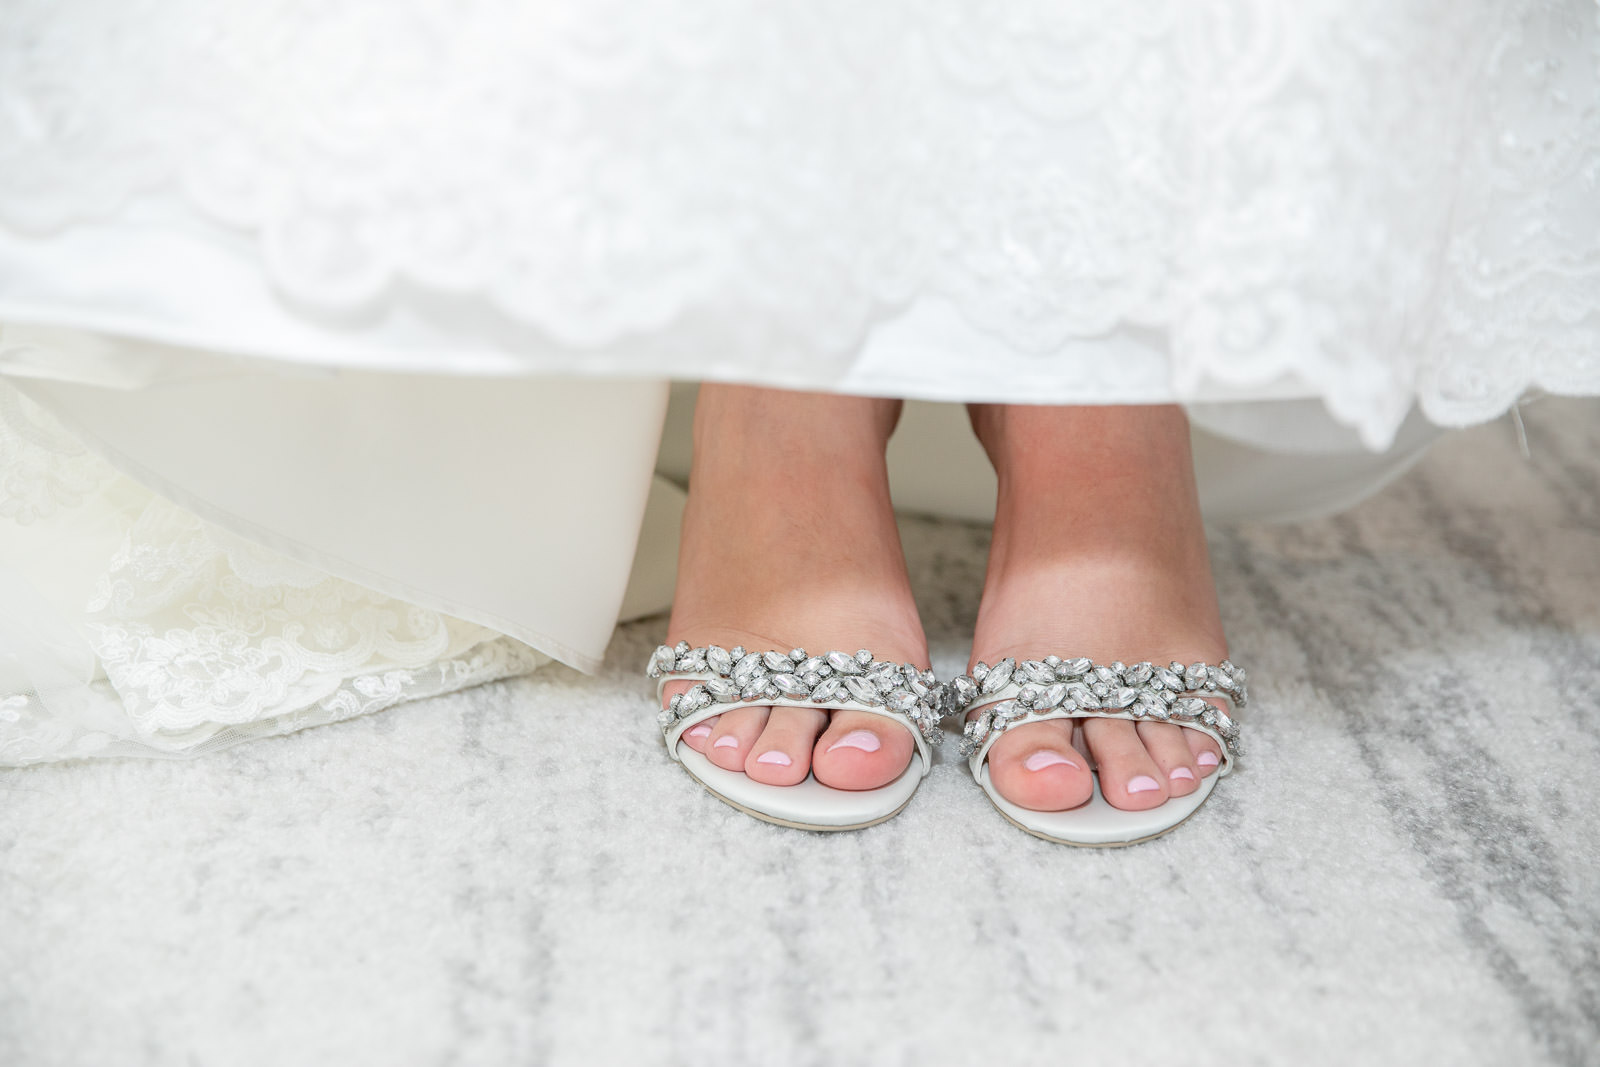 Newport Harbor Hotel, Newport harbor hotel and Marina, Newport, rhode island, beach wedding, harbor wedding, coastal wedding, wedding, Tracy jenkins photography, RI wedding photographer, Rhode Island wedding photographer, wedding shoes, getting ready, details, rhinestones, pink toes